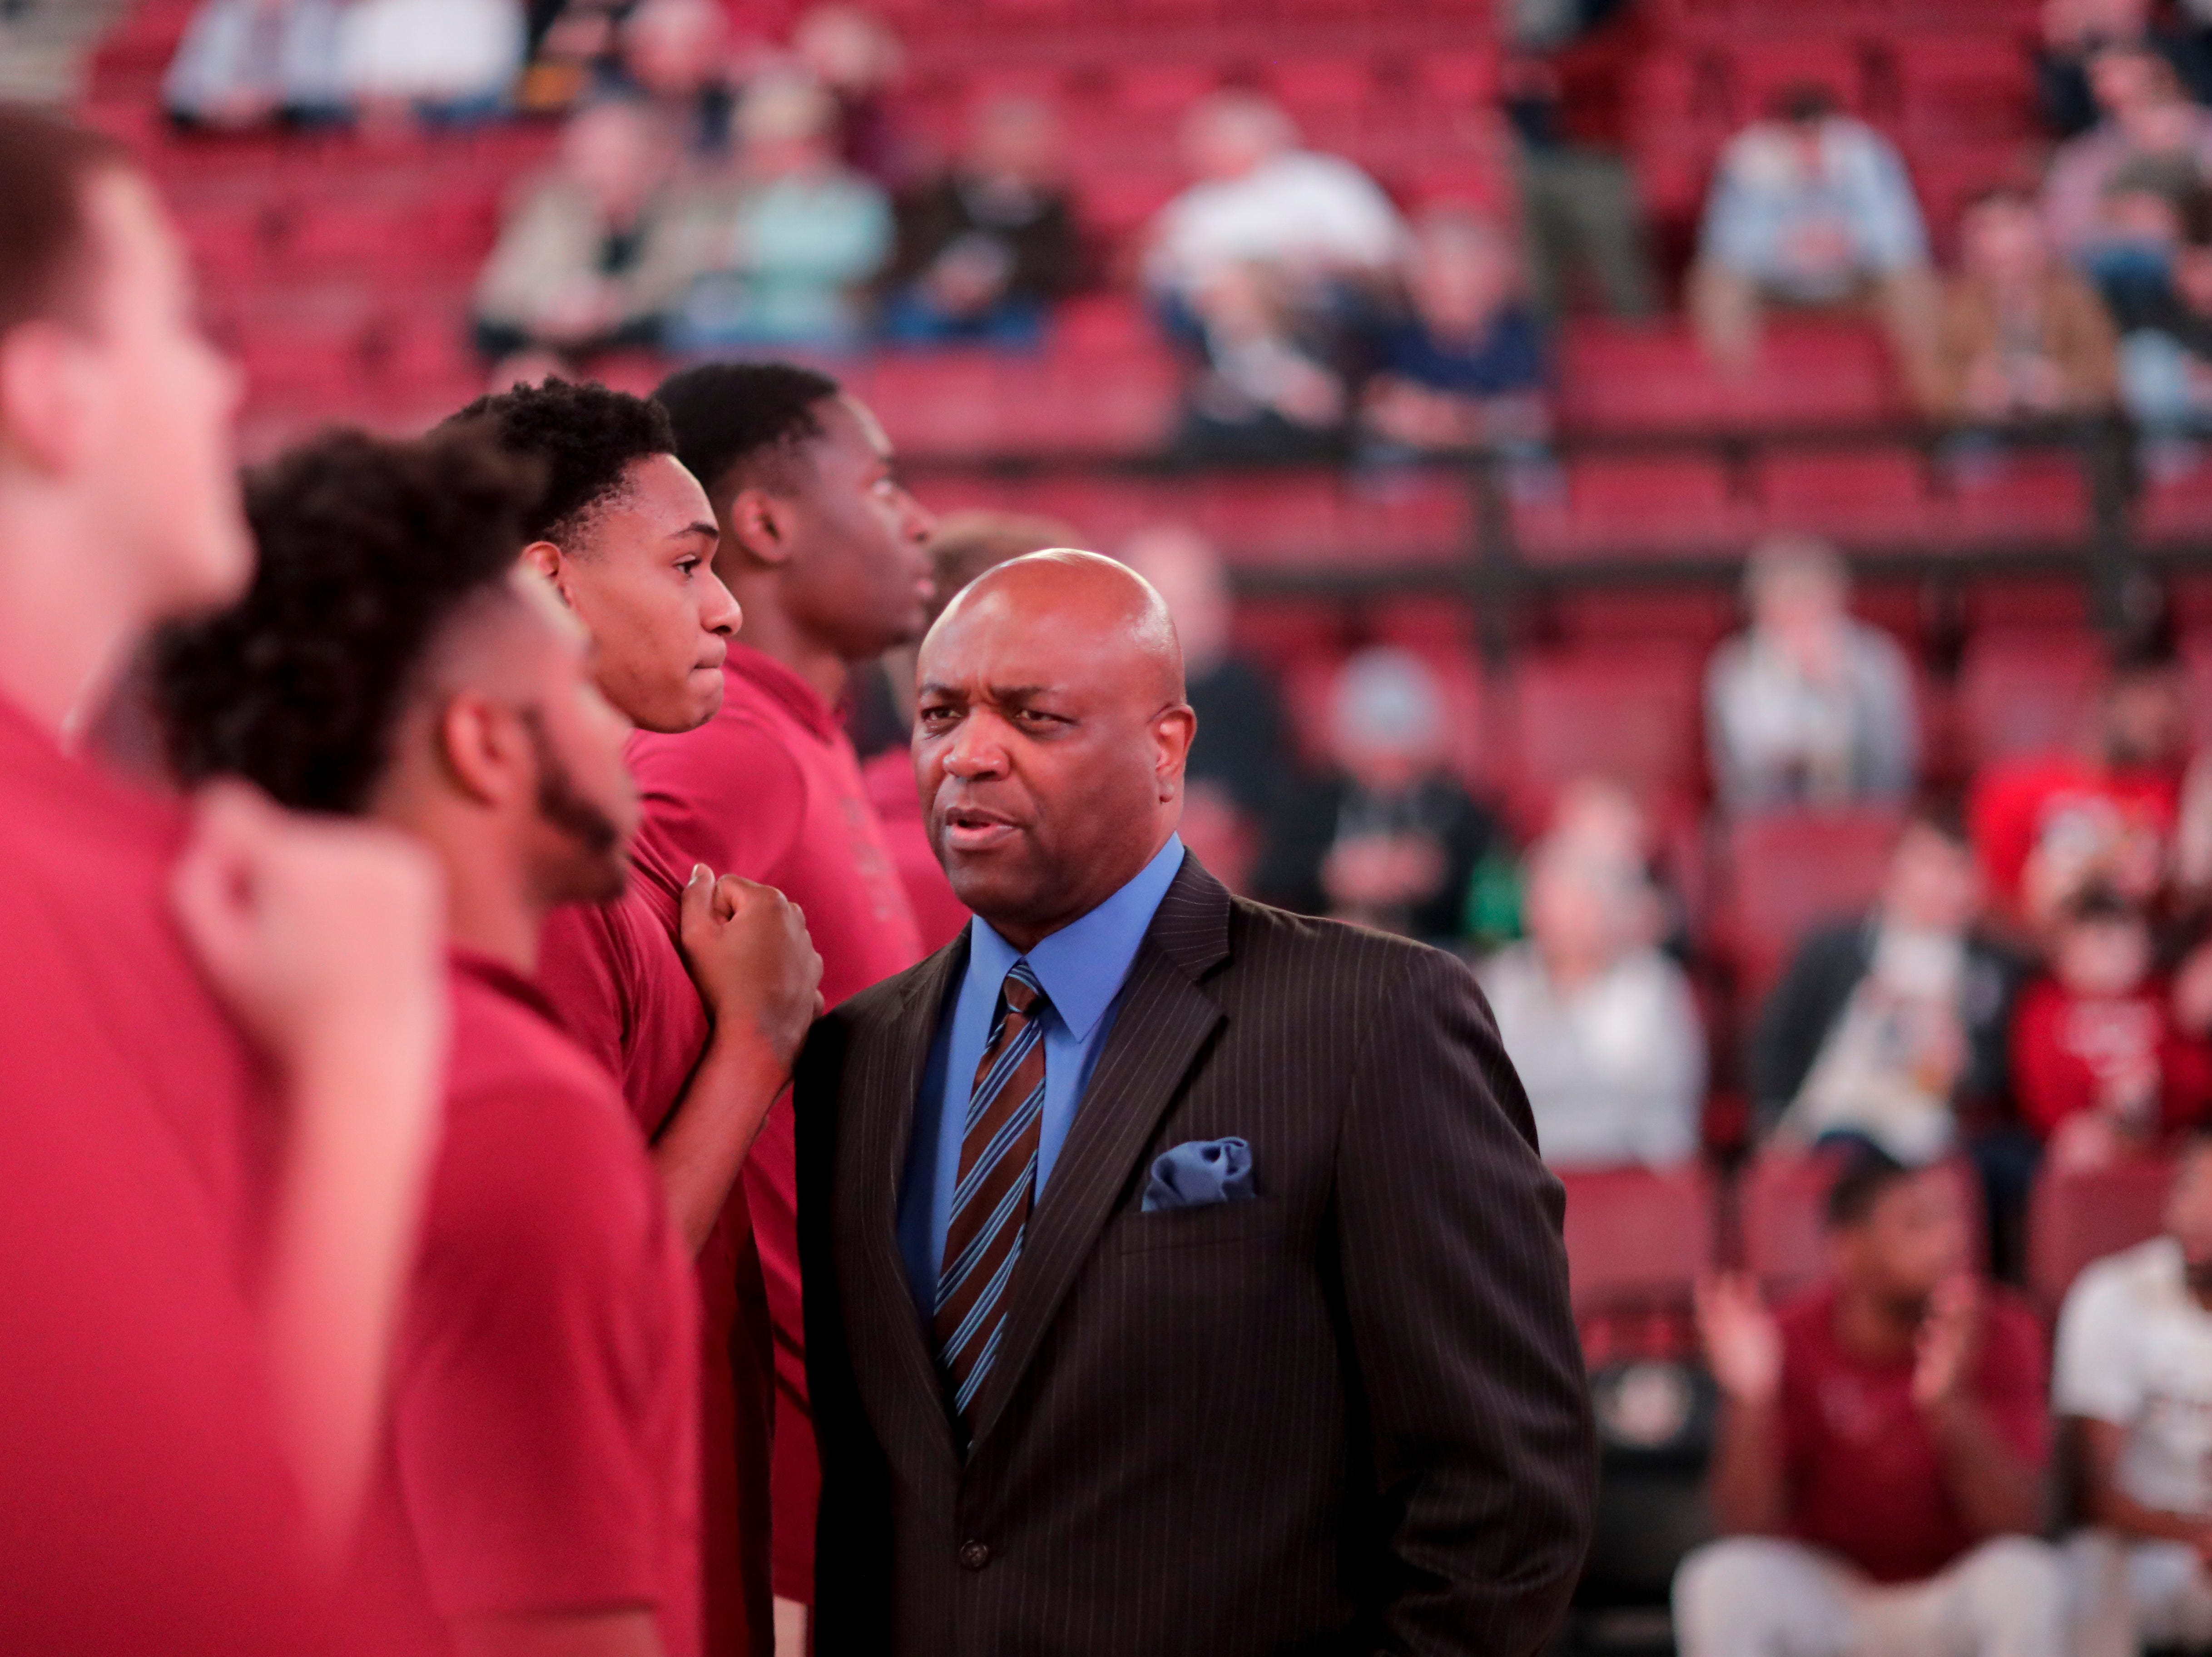 Florida State Seminoles head coach Leonard Hamilton talks to his players before the starters are announced during a game between Florida State University and the University of North Florida at Donald L. Tucker Civic Center in Tallahassee, Fla. Wednesday, Dec. 19, 2018.